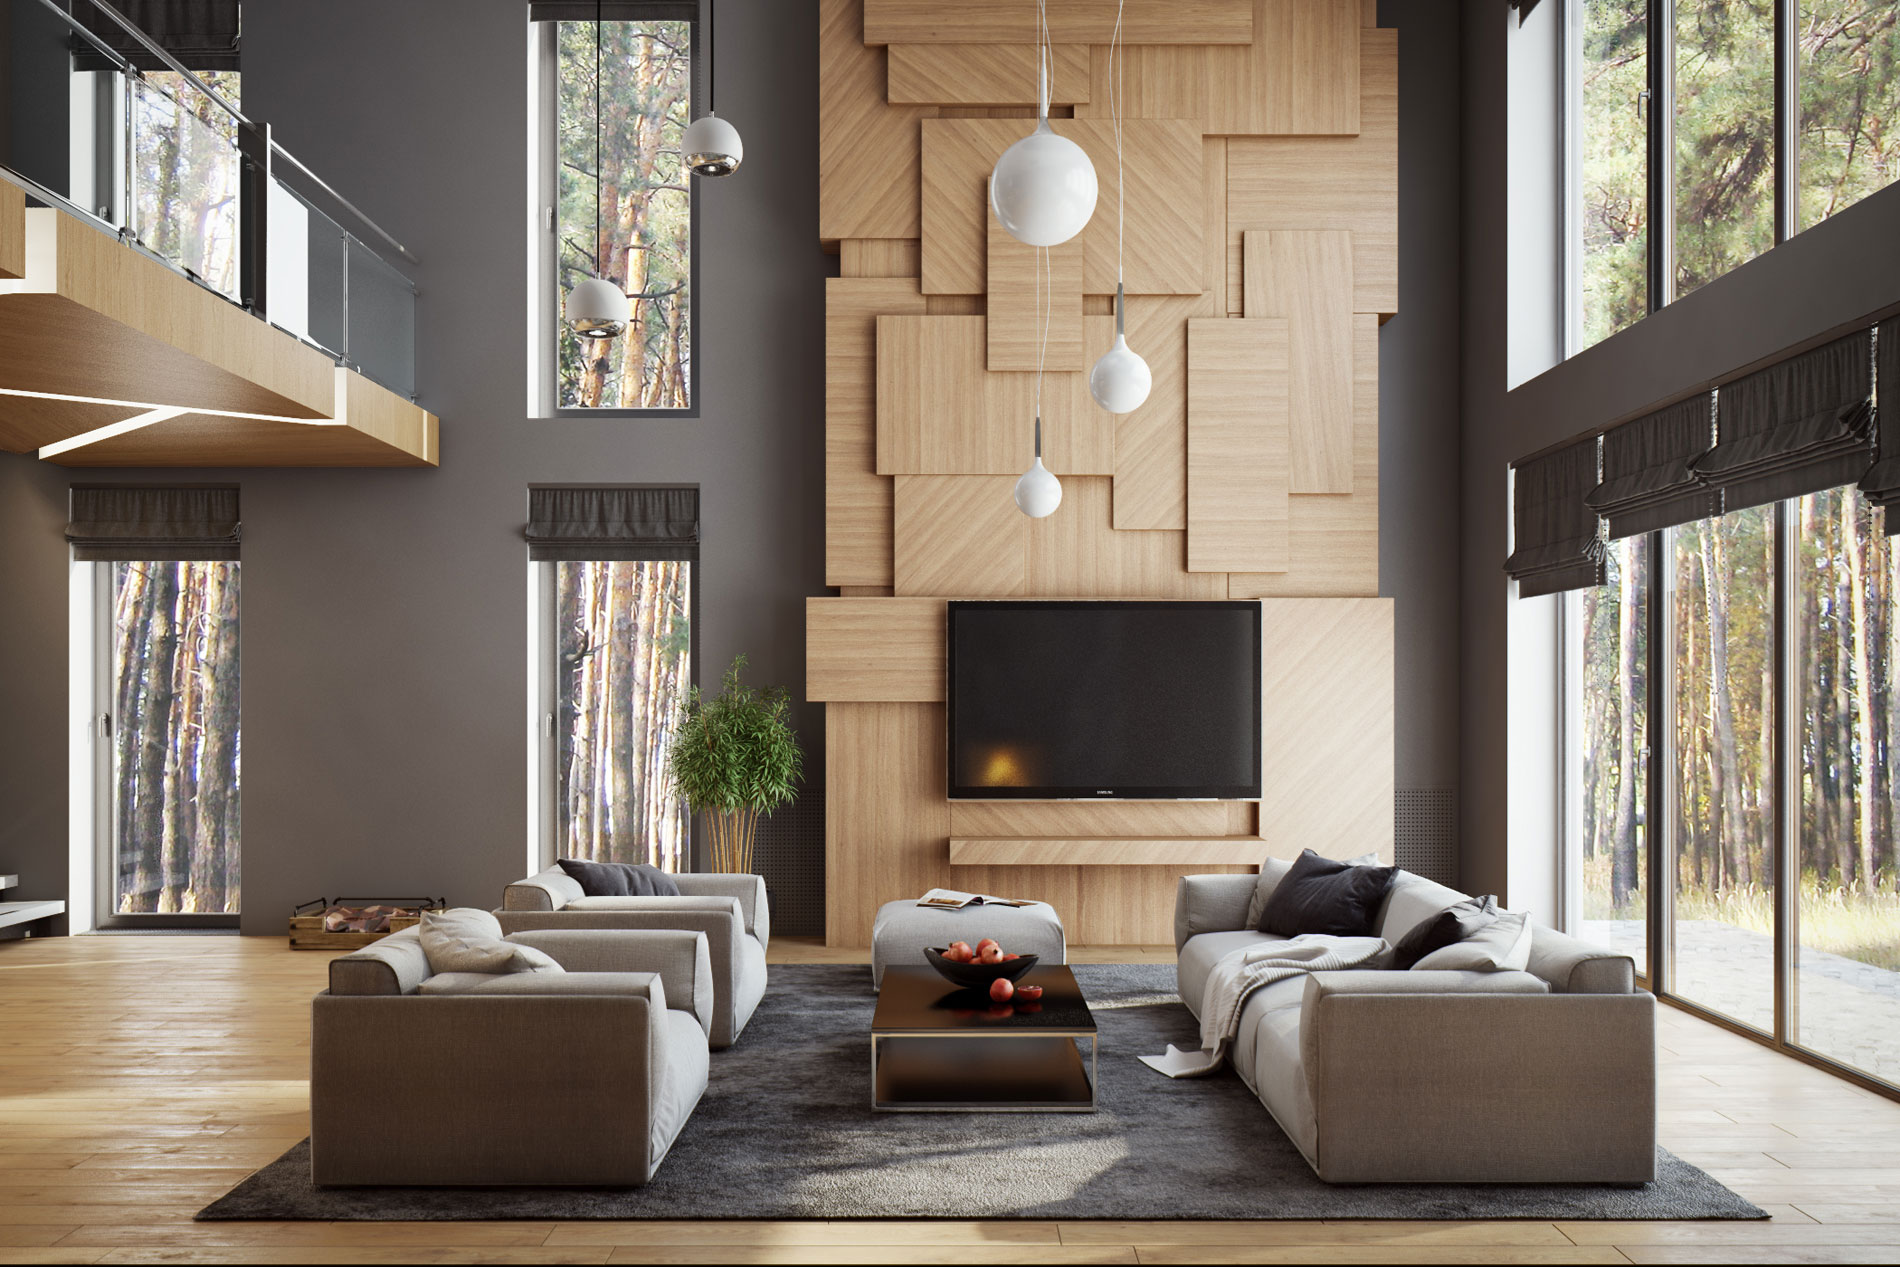 Buro 108 Designs a Chic Interior in Moscow, Russia